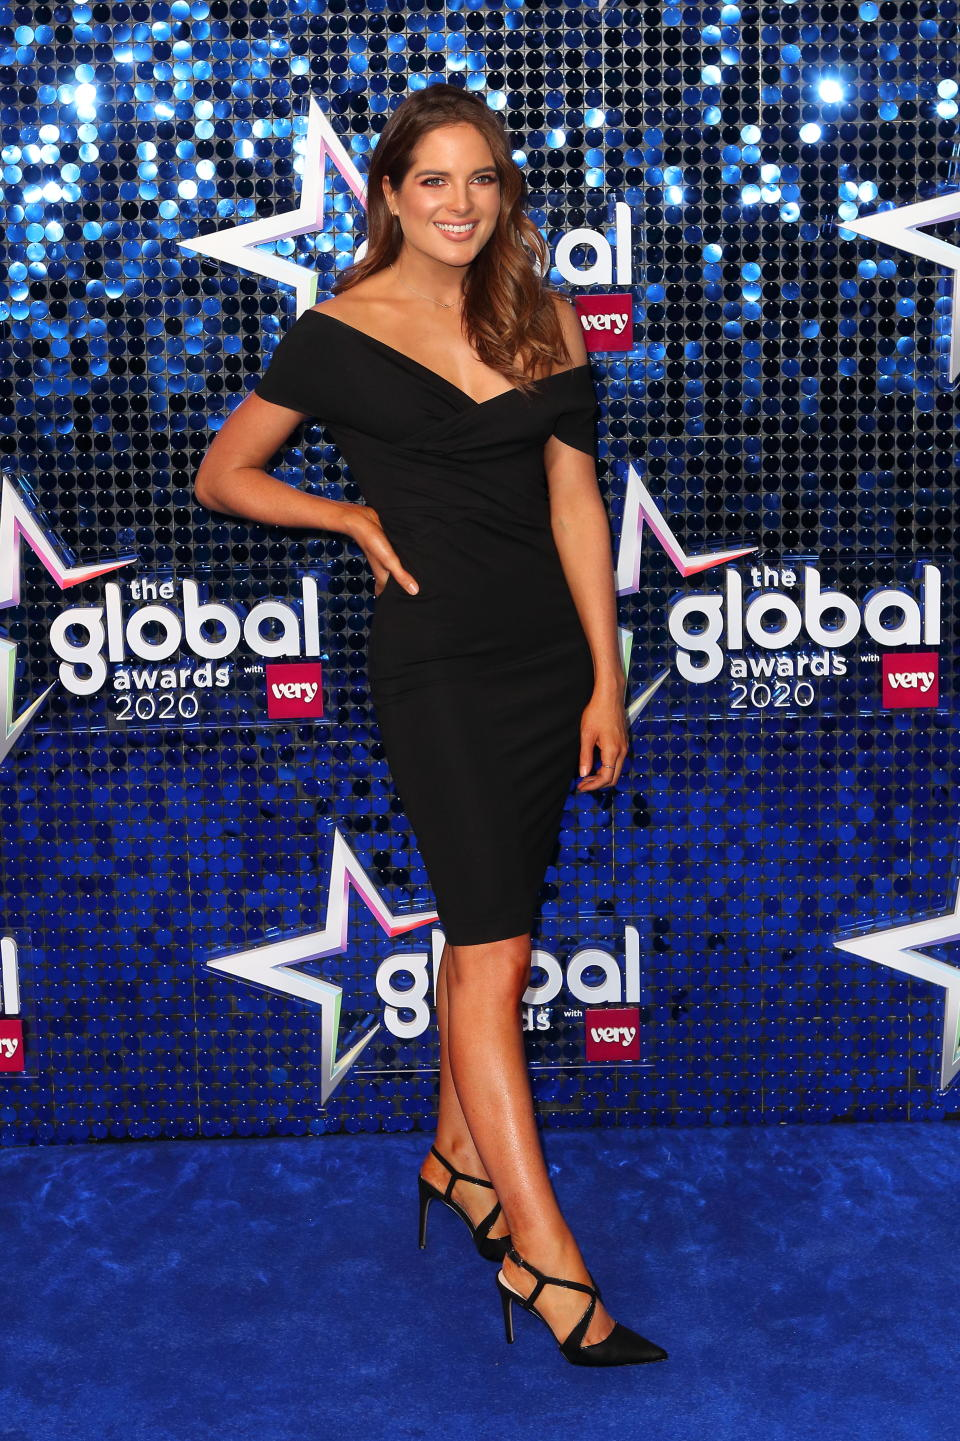 LONDON, UNITED KINGDOM - March 5, 2020 -  Binky Felstead arrives at the Global Awards 2020, Hammersmith Apollo, London UK- PHOTOGRAPH BY Jamy / Barcroft Studios / Future Publishing (Photo credit should read Jamy/Barcroft Media via Getty Images)